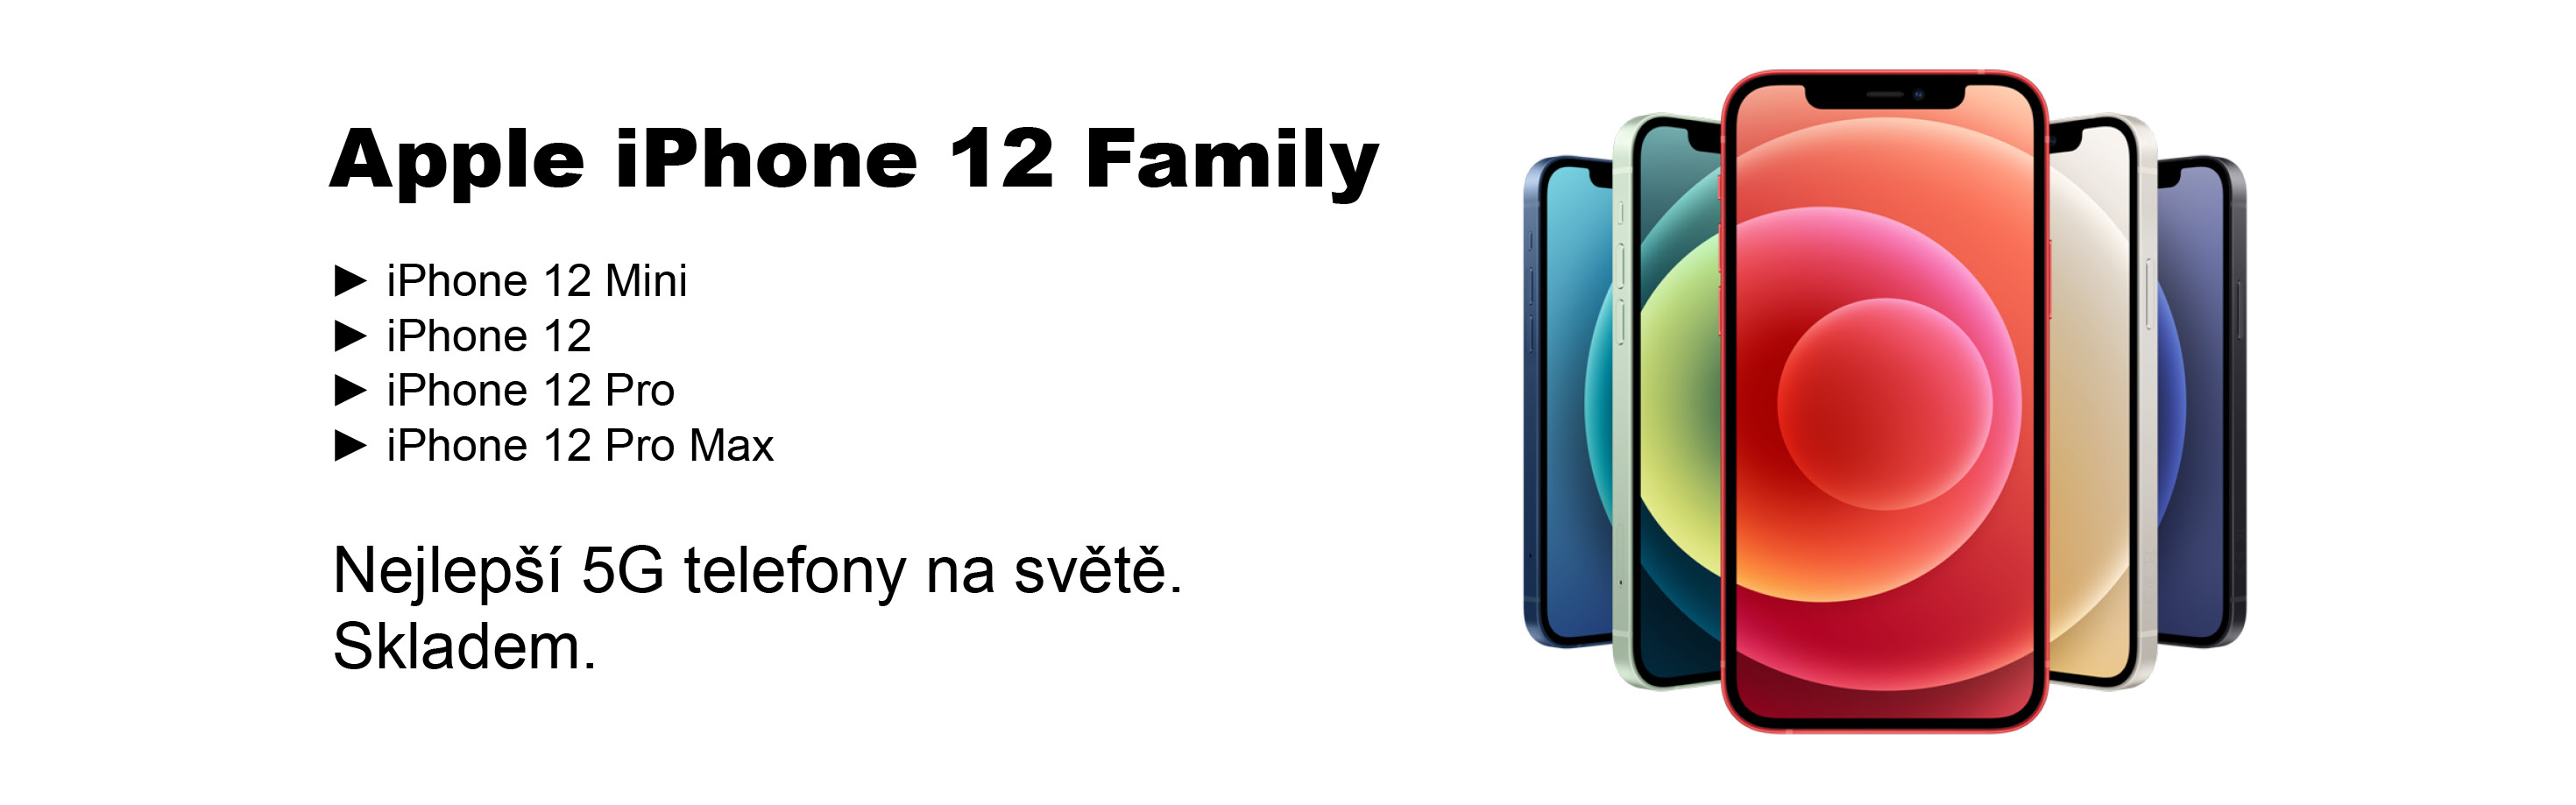 iPhone 12 Family